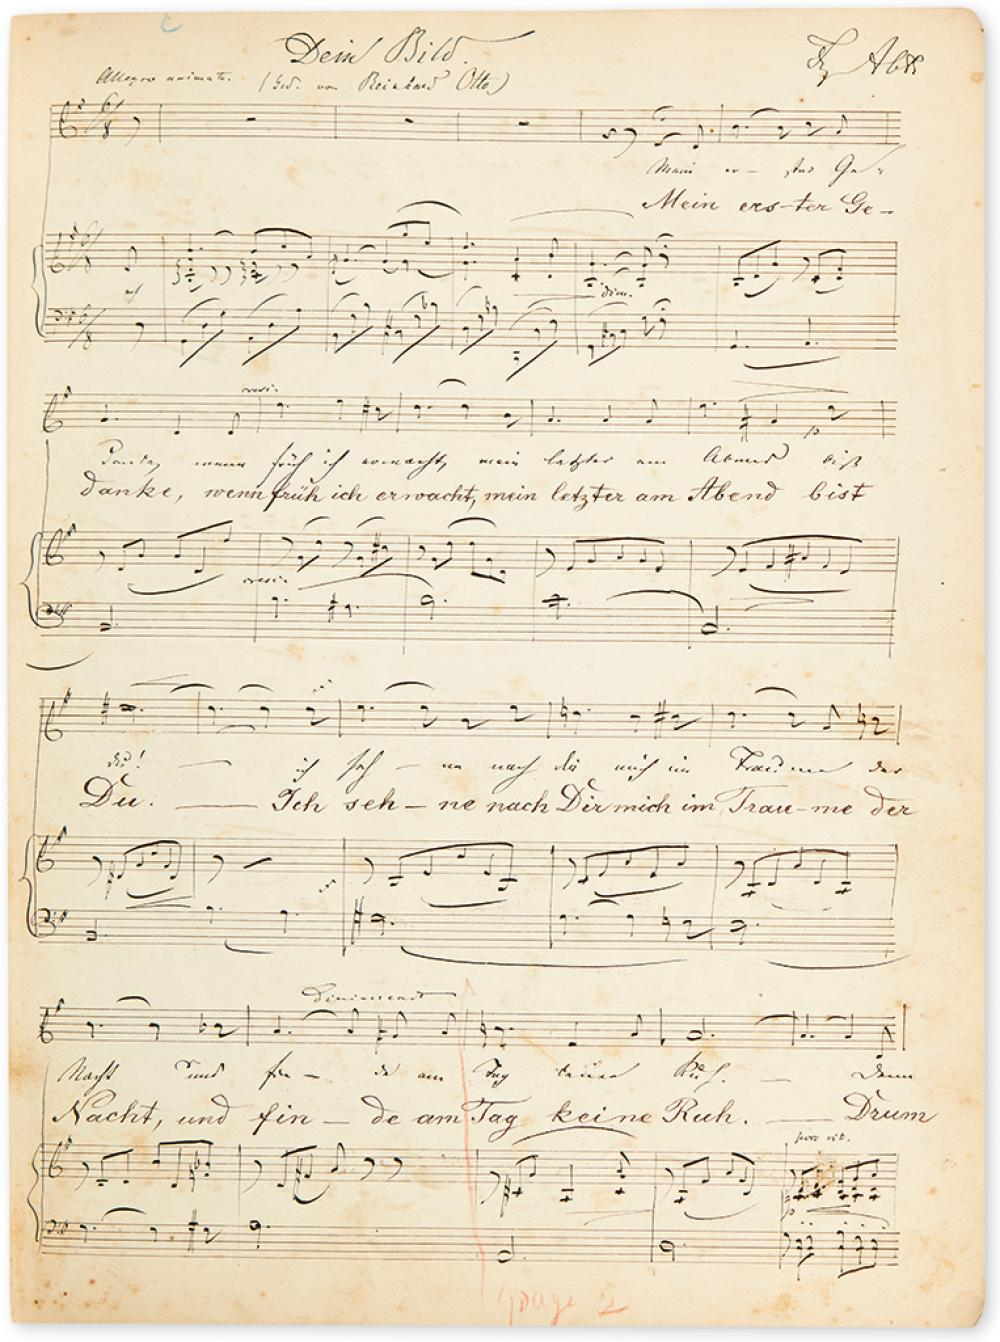 ABT, FRANZ. Group of 4 Autograph Musical Manuscripts Signed, each with holograph lyrics and title, in German, and with a holograph titl